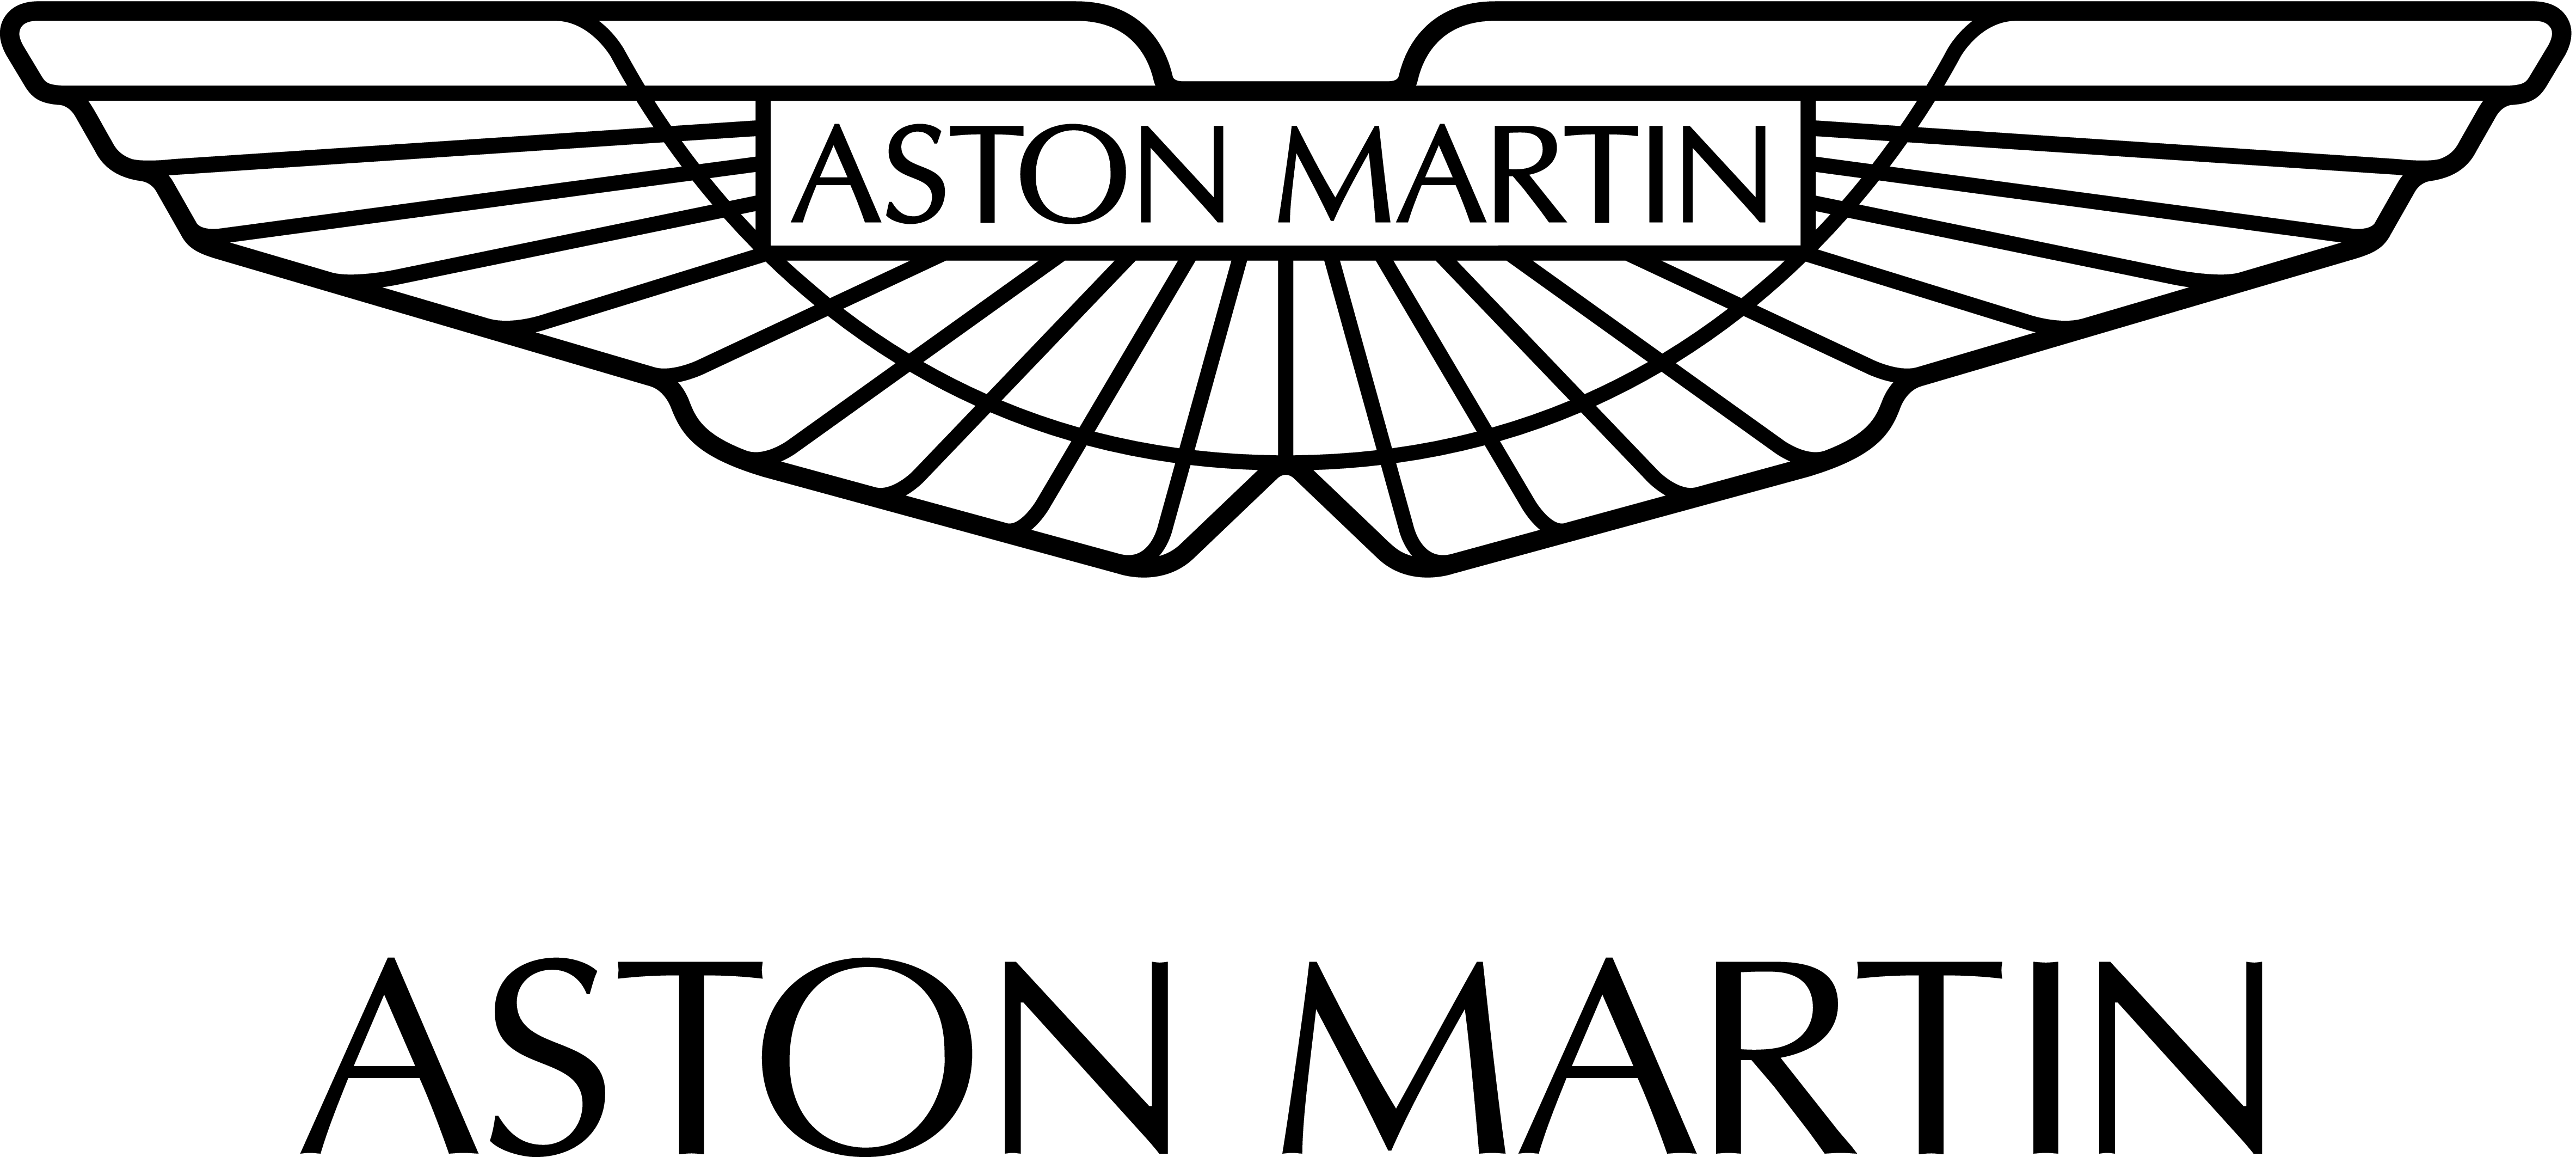 pin by kim nicely on brands aston martin aston martin cars cars Concept Cars Chrysler History aston martin is known around the world as one of the premier luxury car makers the aston martin vulcan is a track only supercar